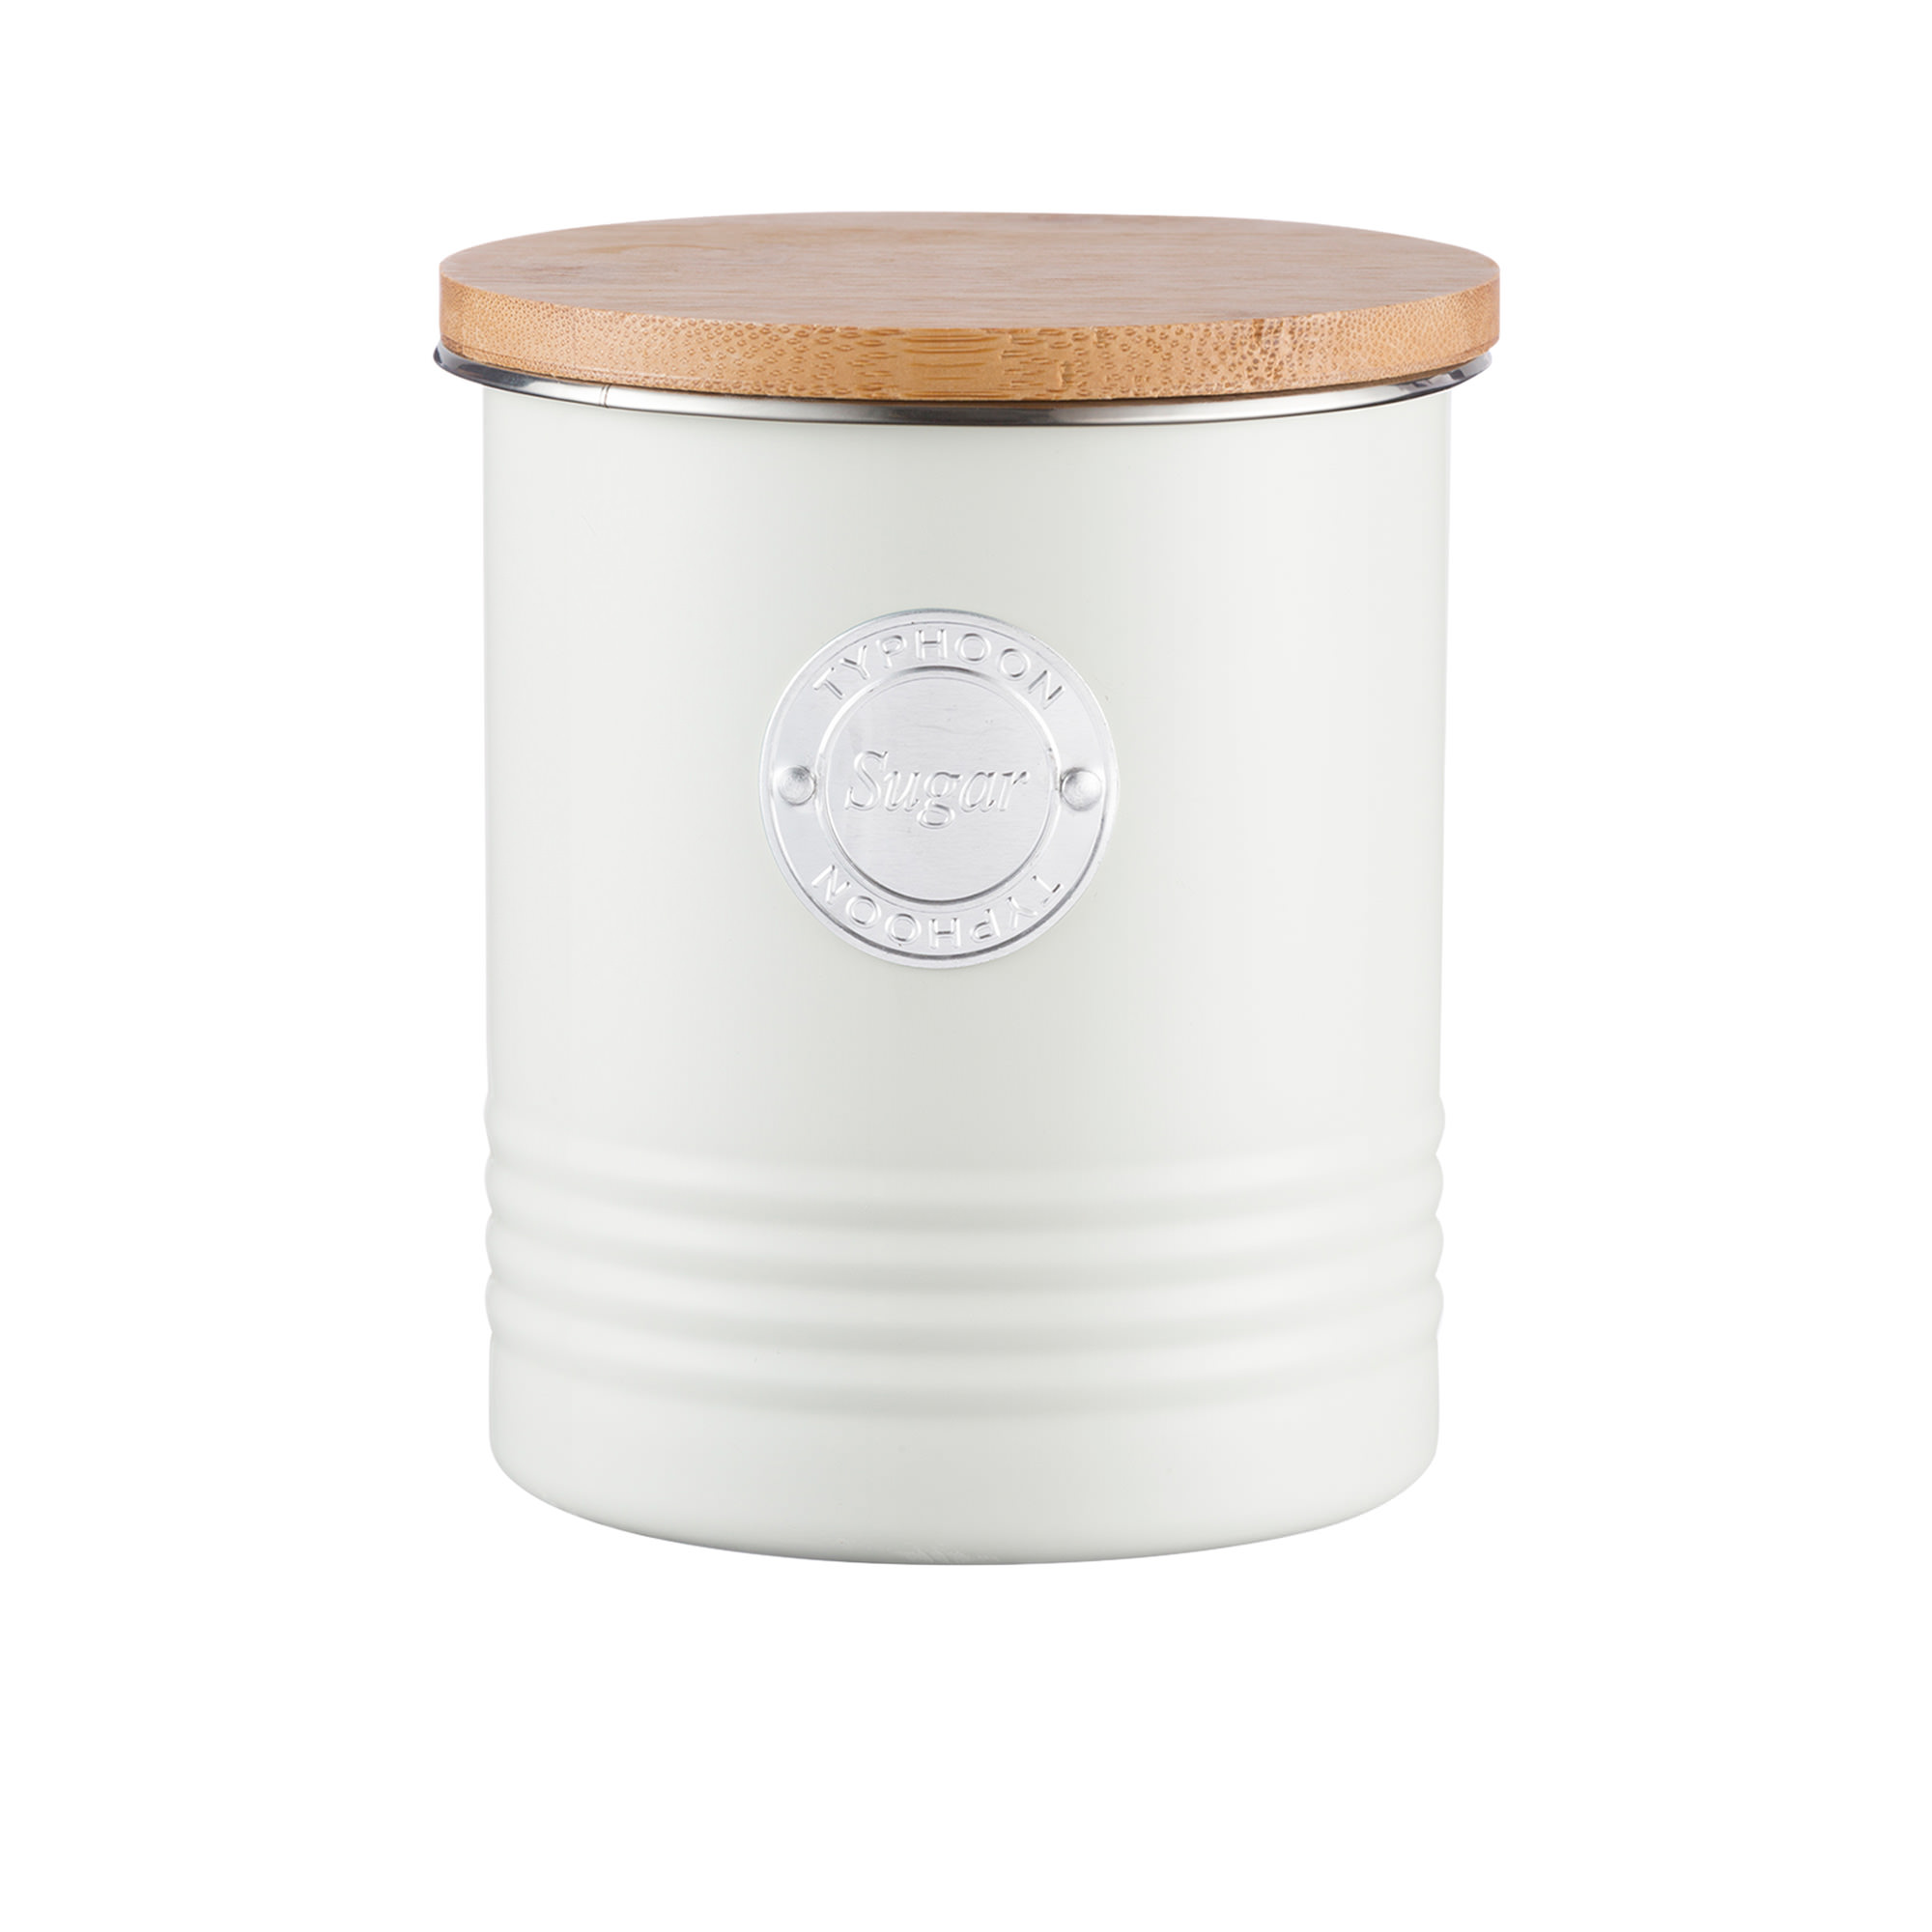 Typhoon Living Sugar Canister 1L Cream